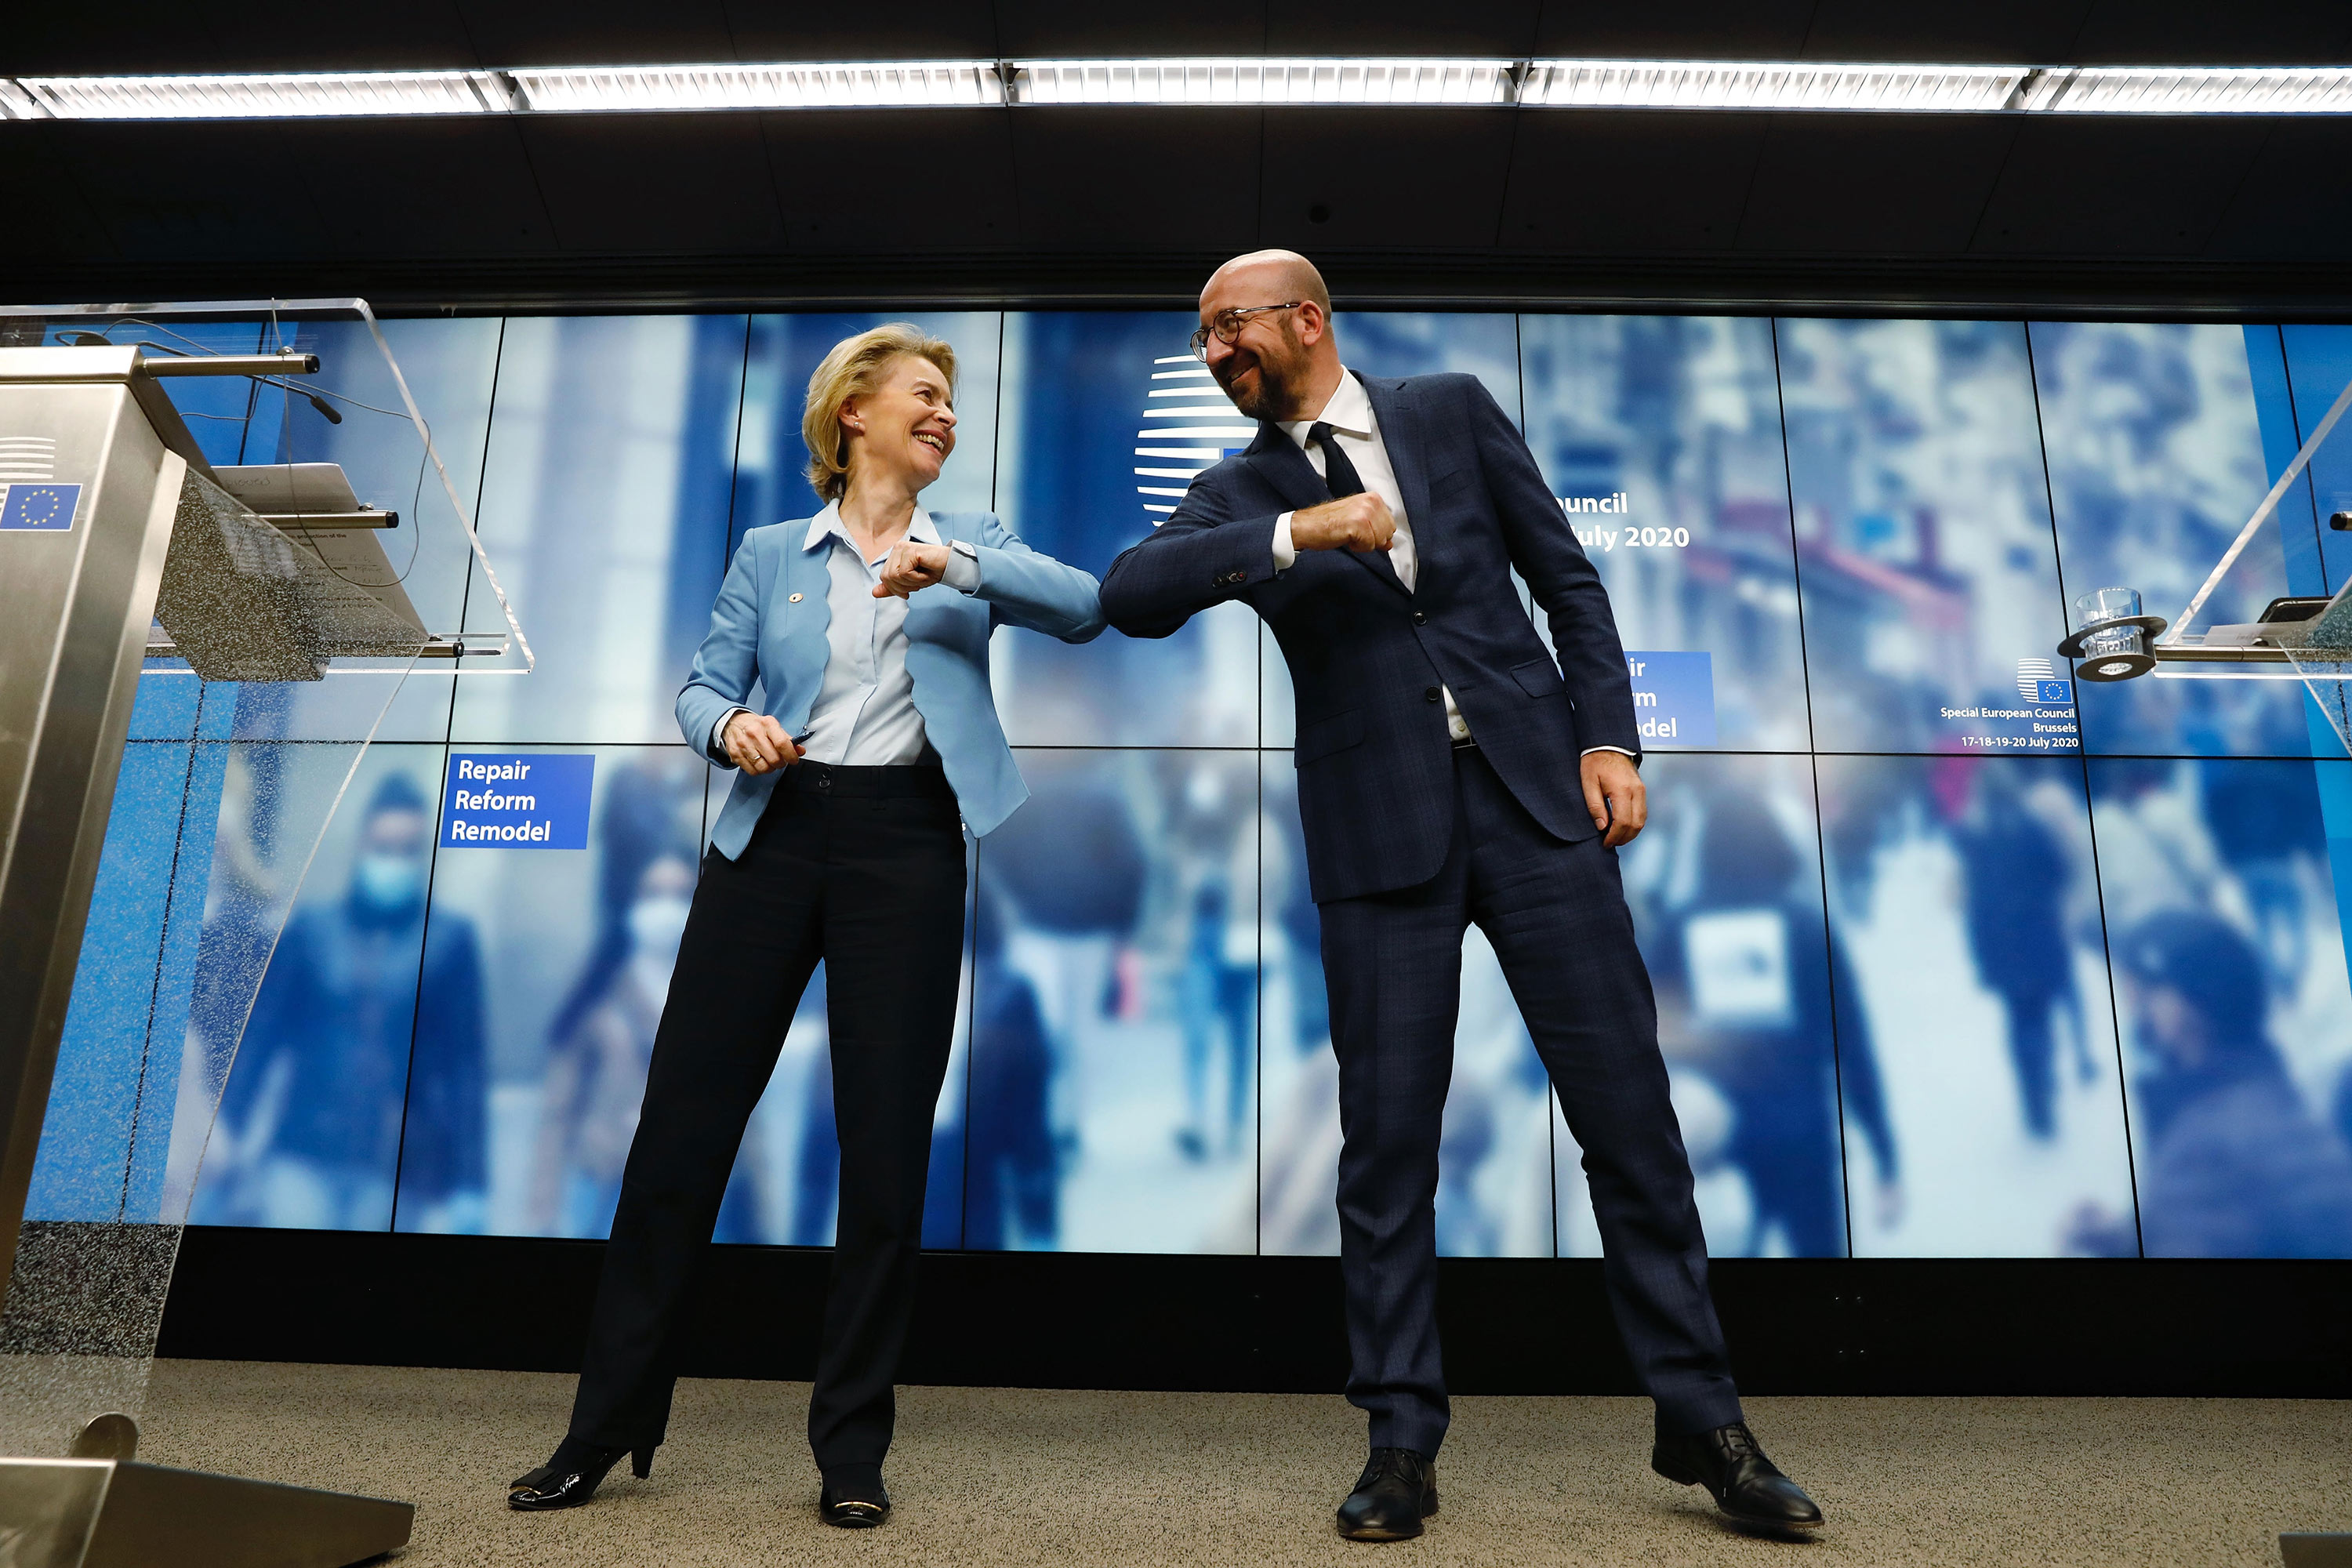 Ursula von der Leyen and Charles Michel elbow bump